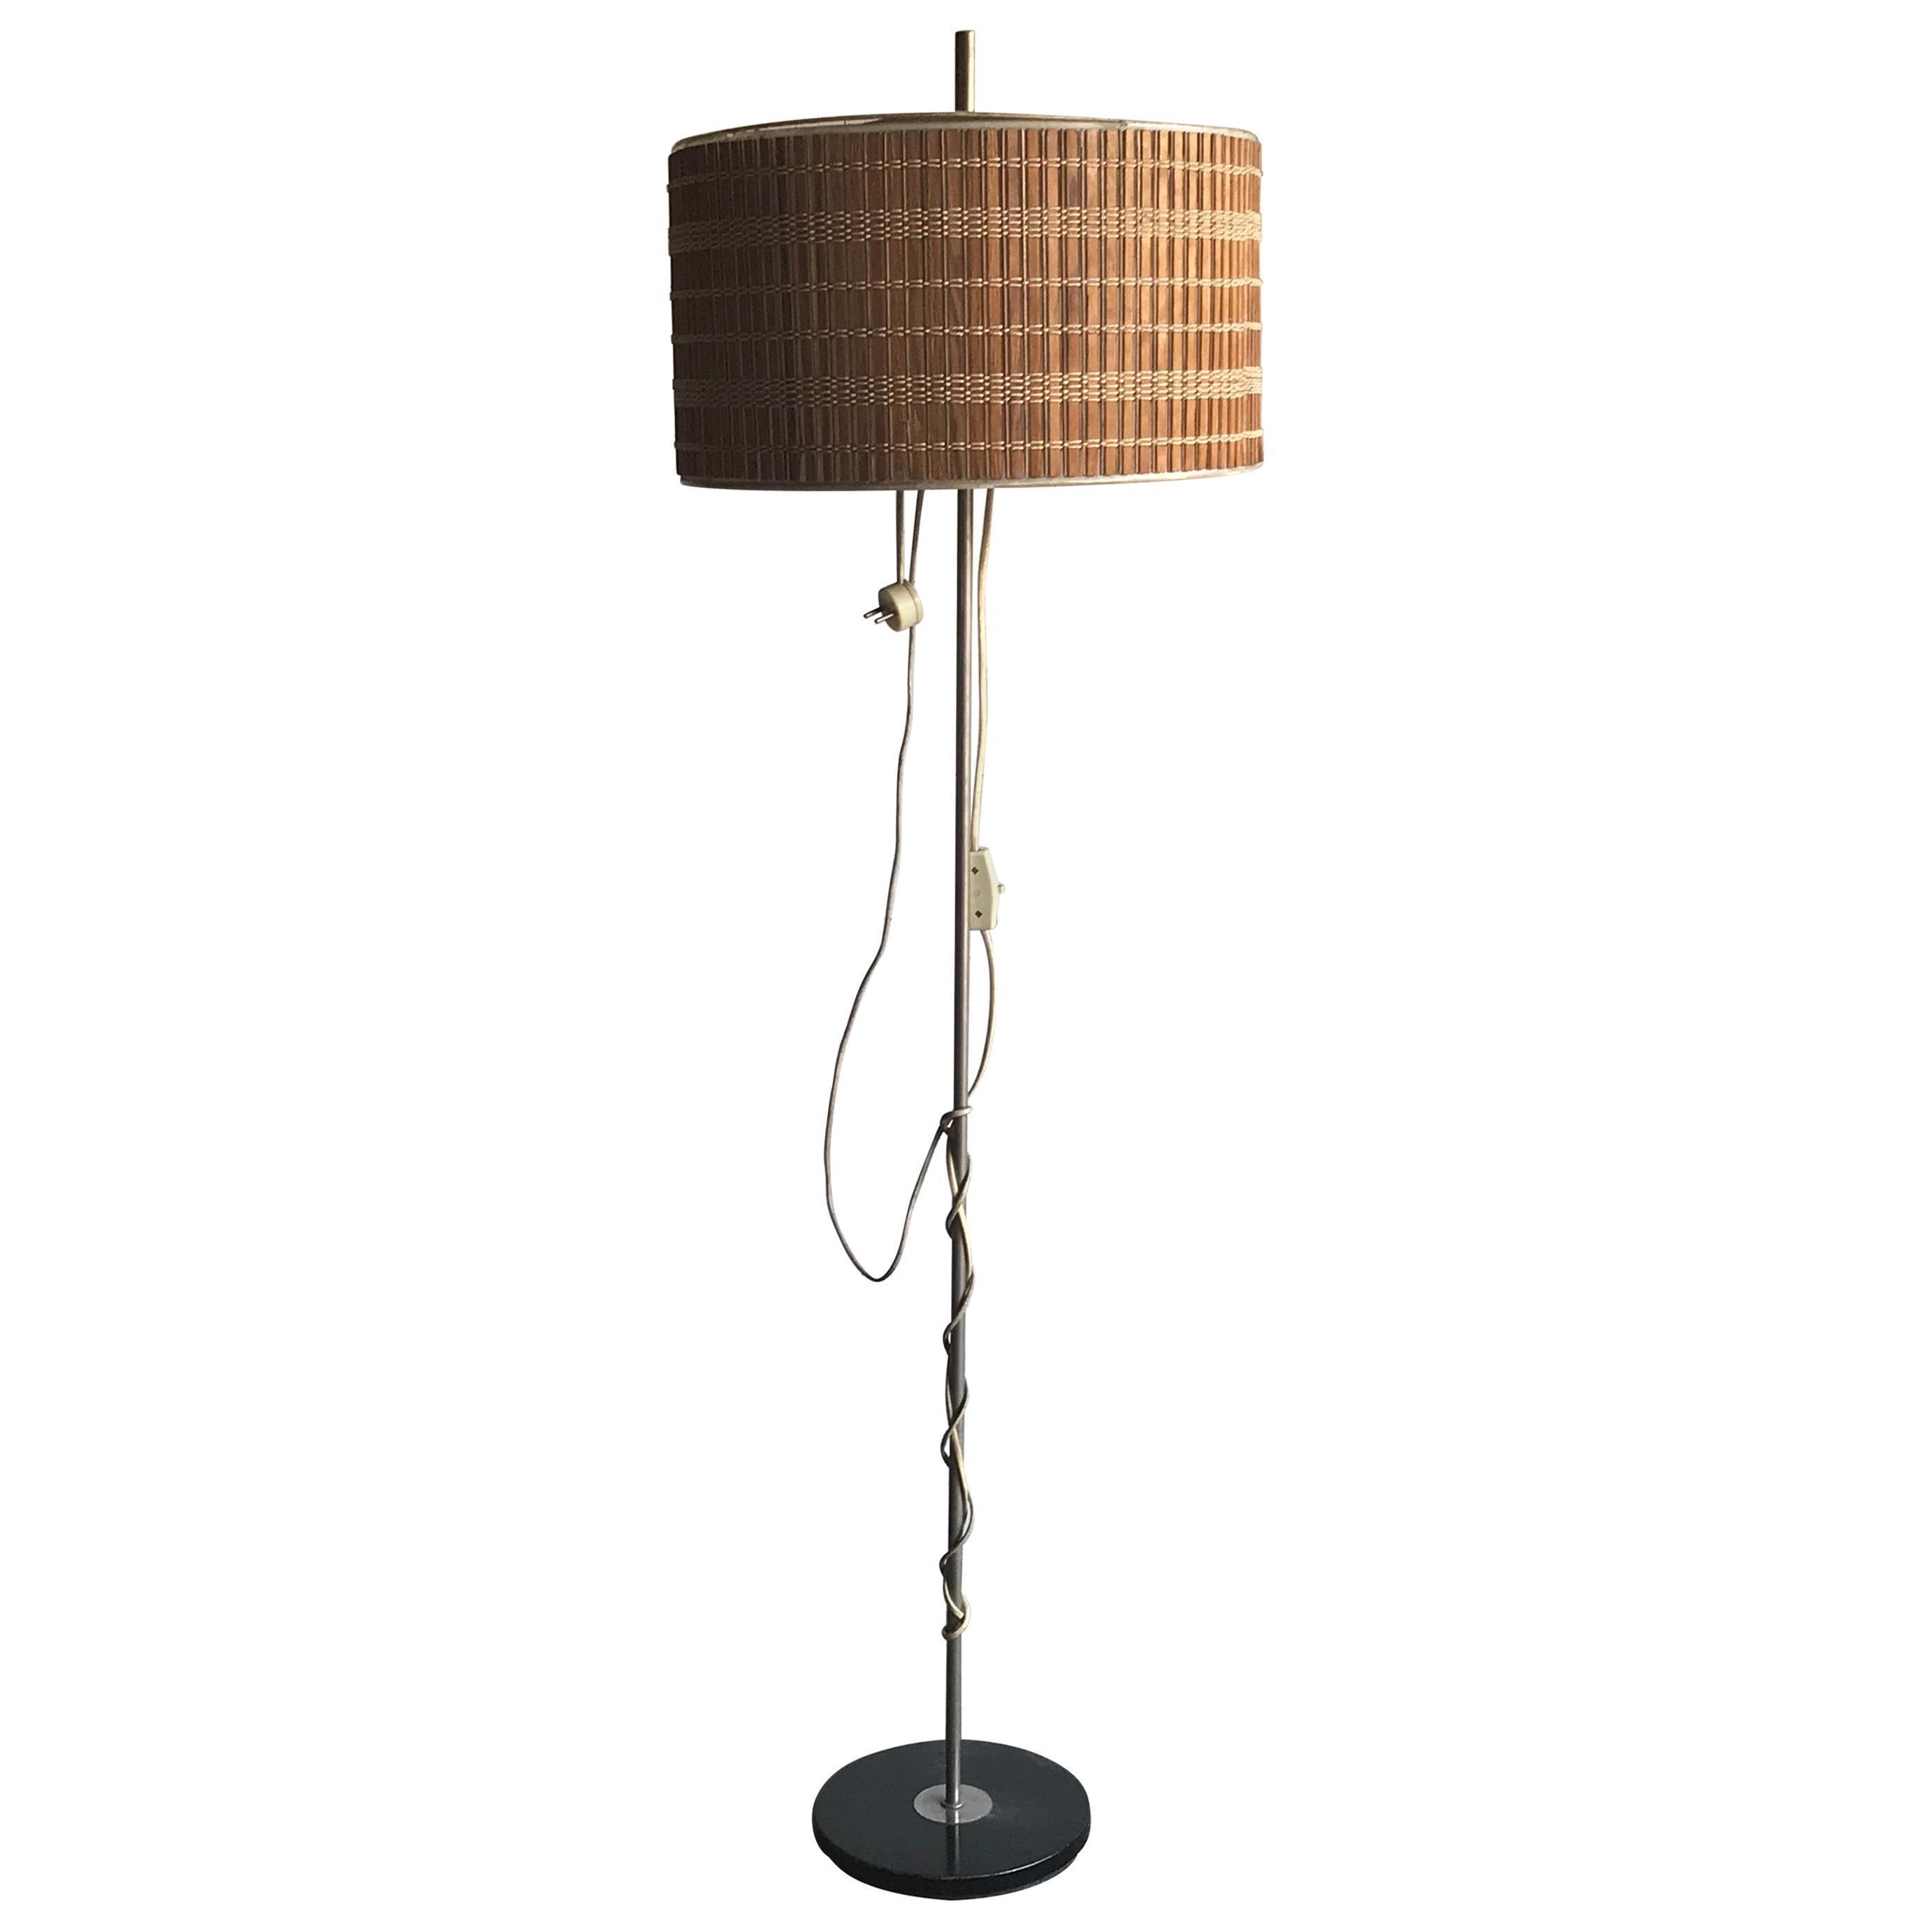 Midcentury Floor Lamp With Wooden Shade